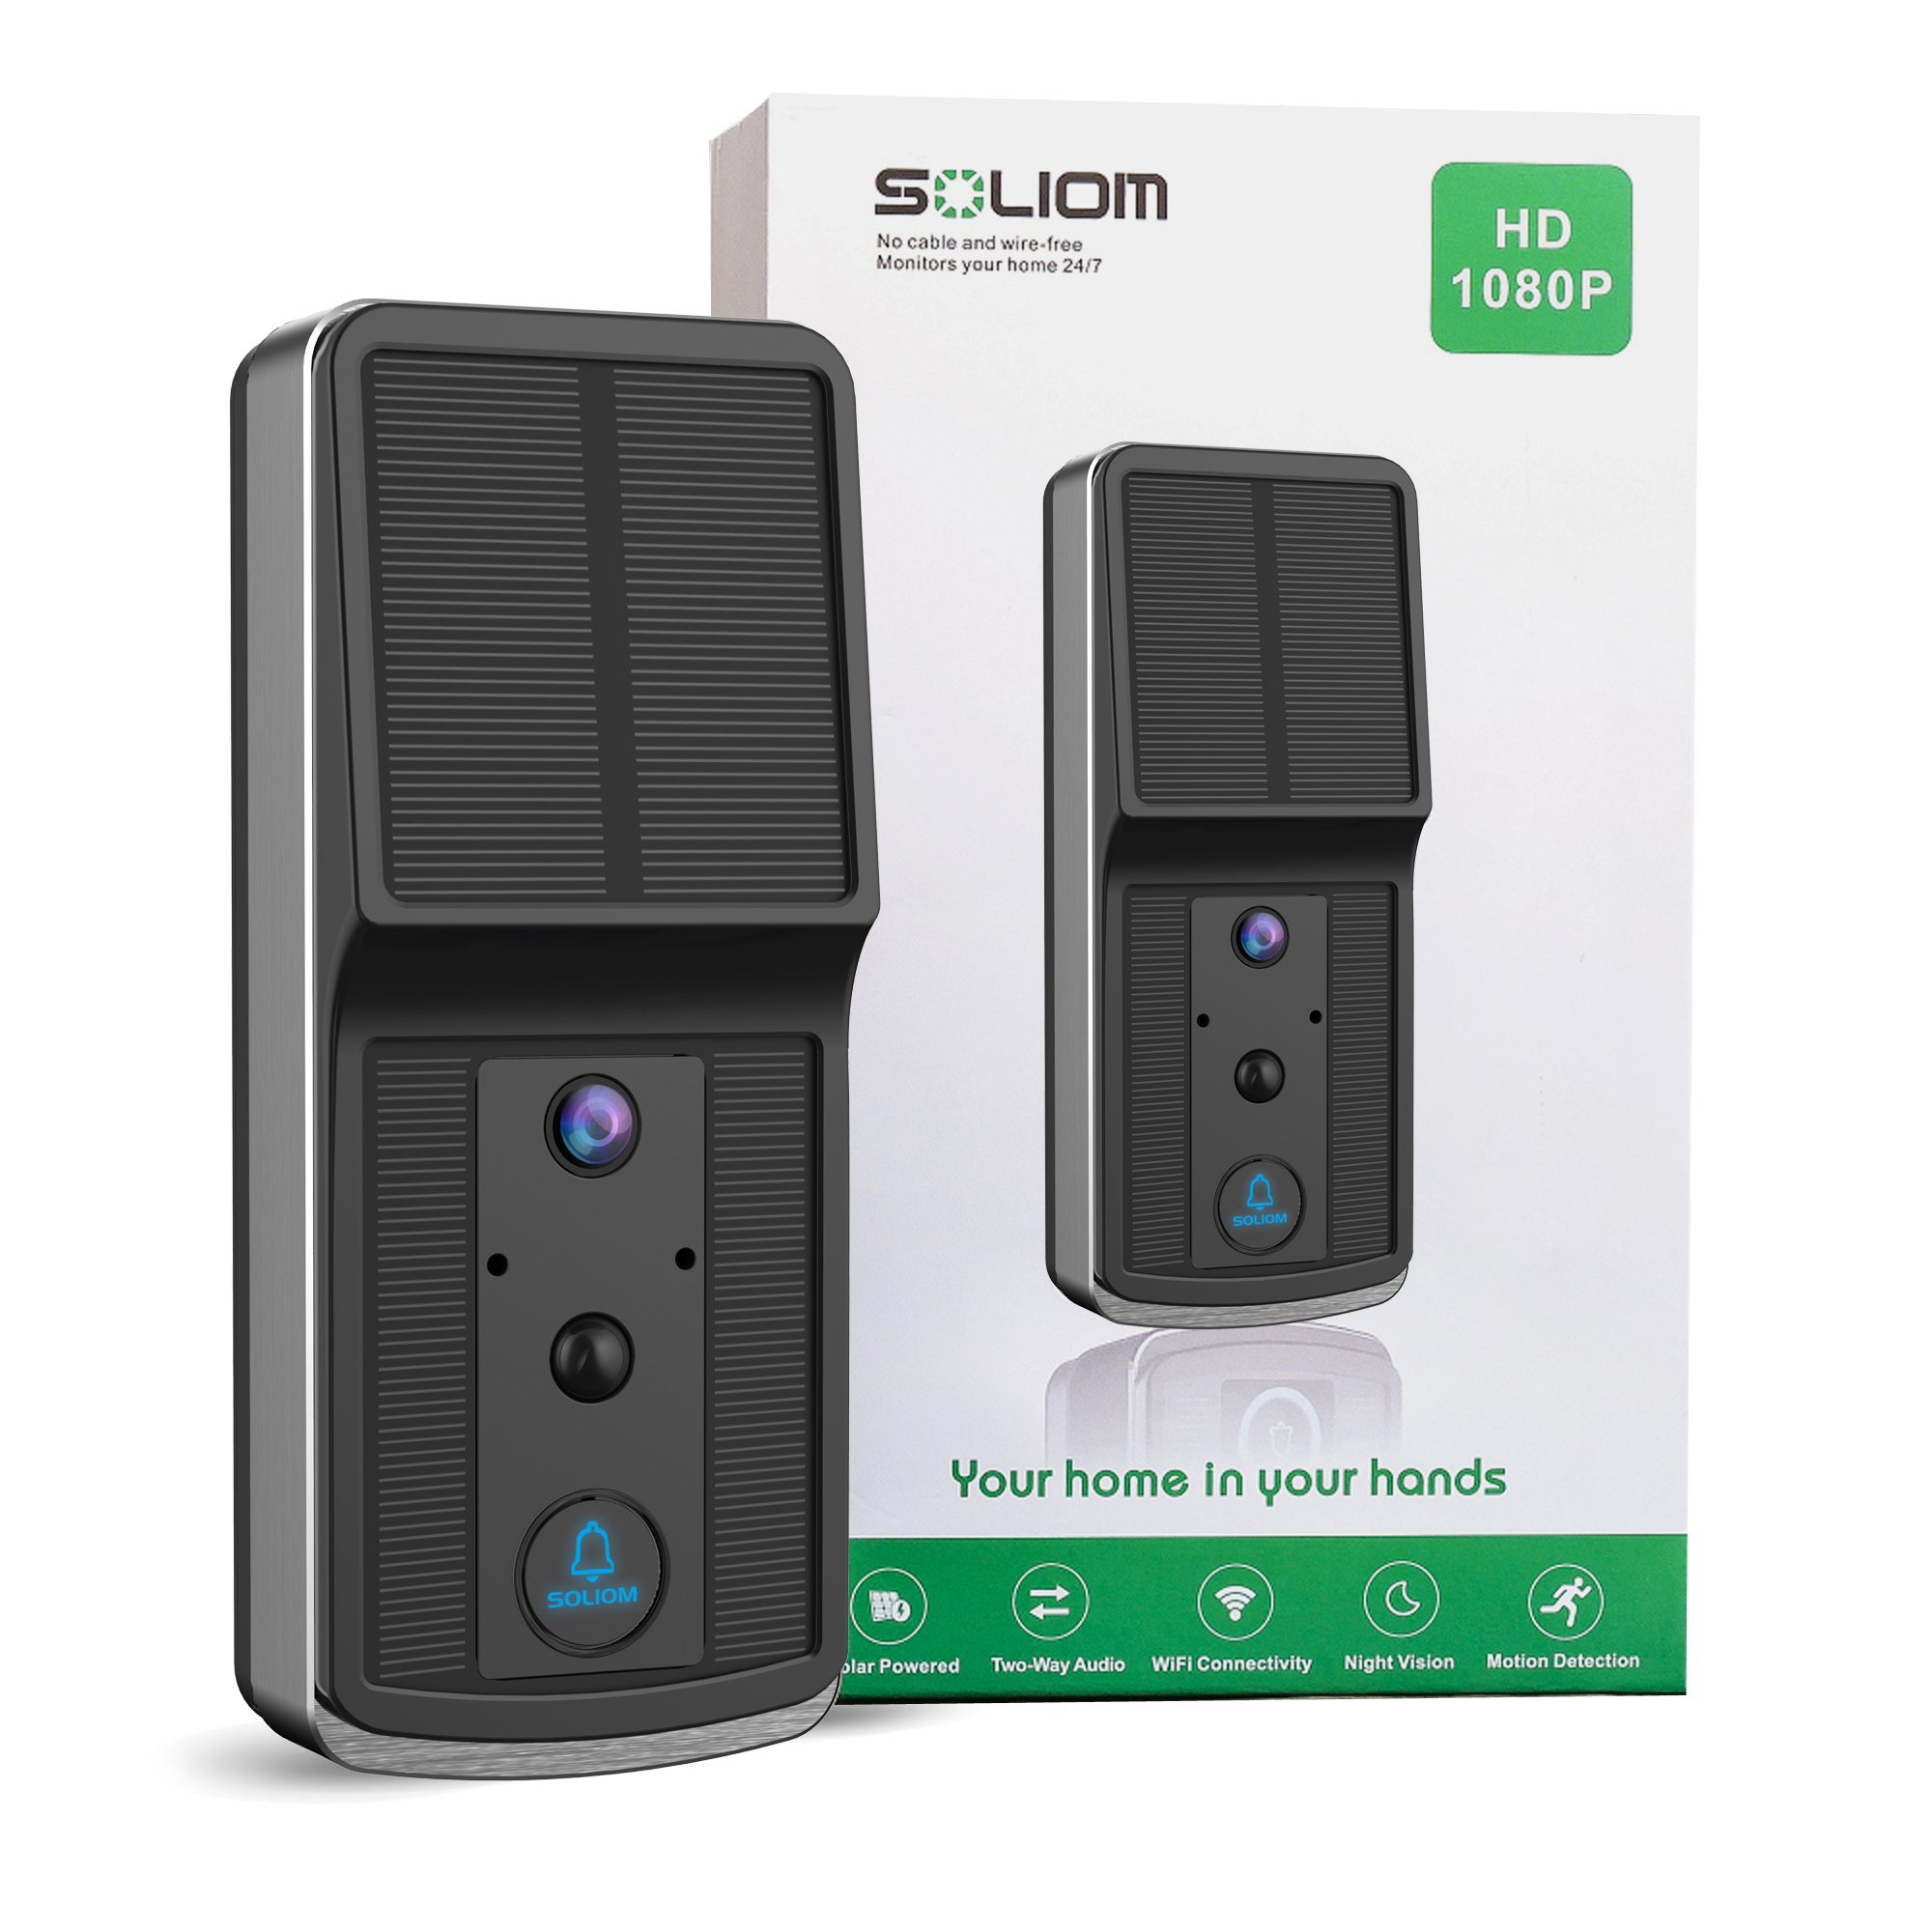 Soliom Solar video doorbell